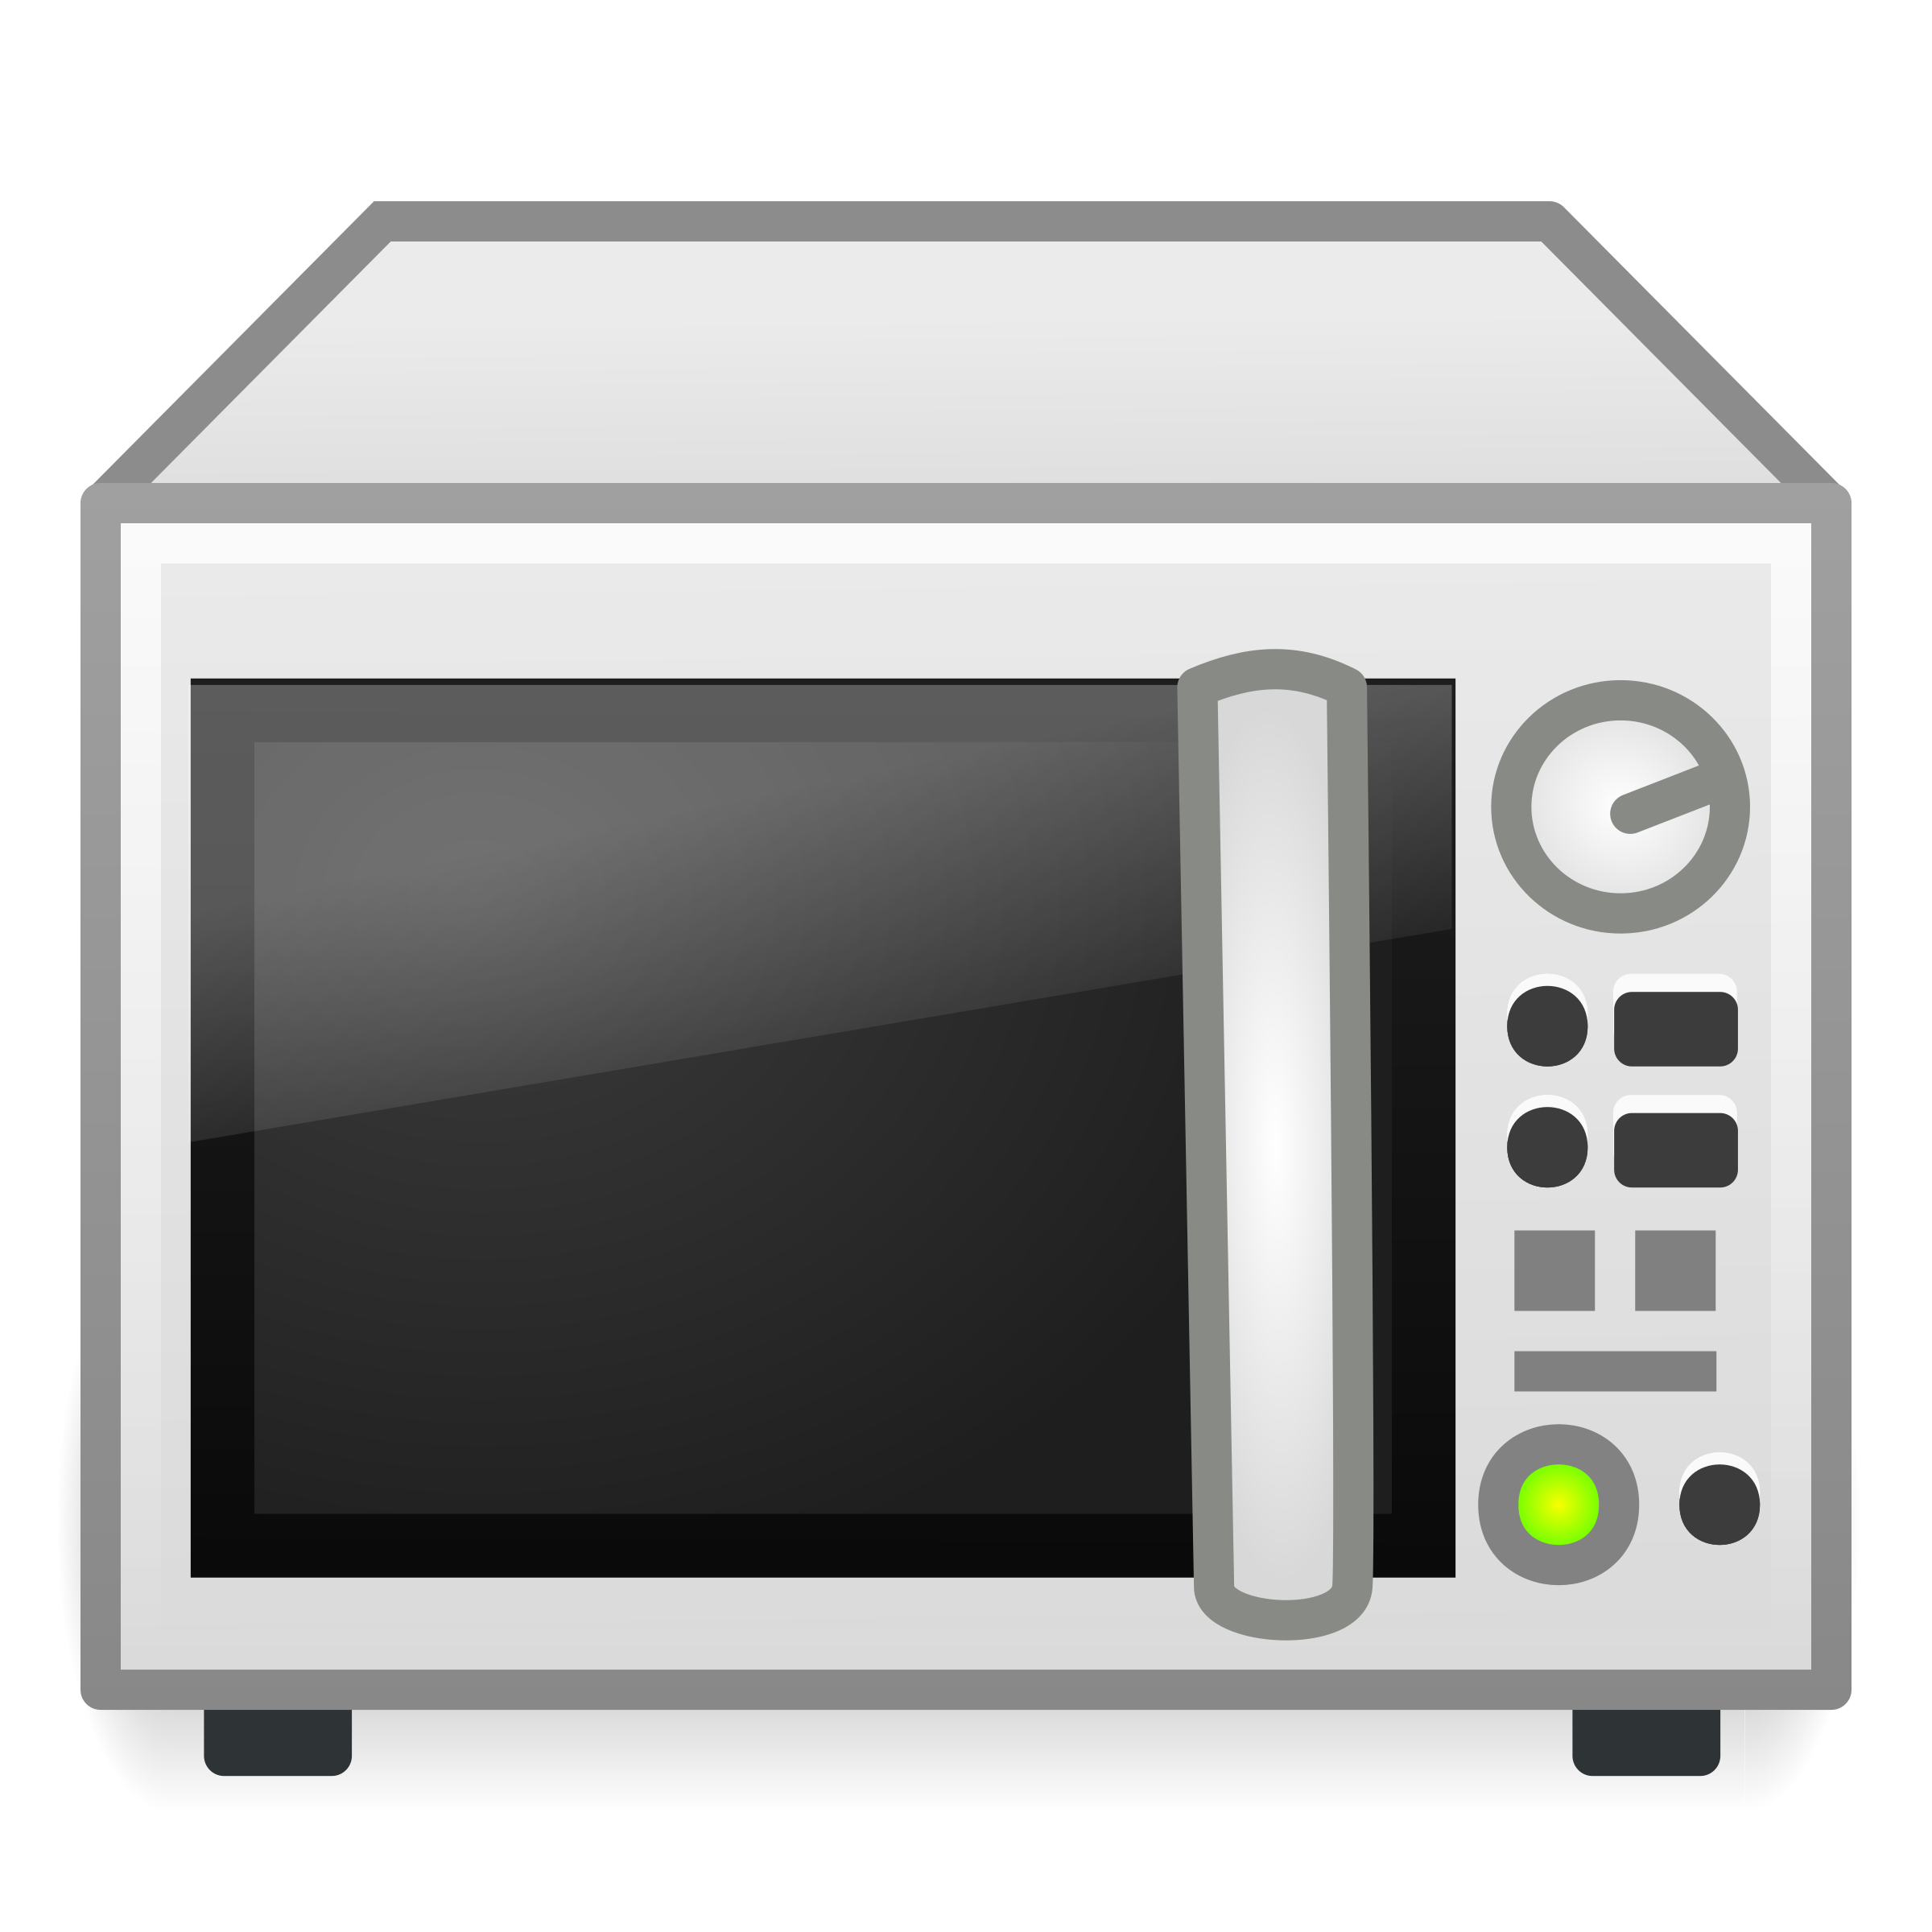 svg transparent download microwave drawing cute #99750689